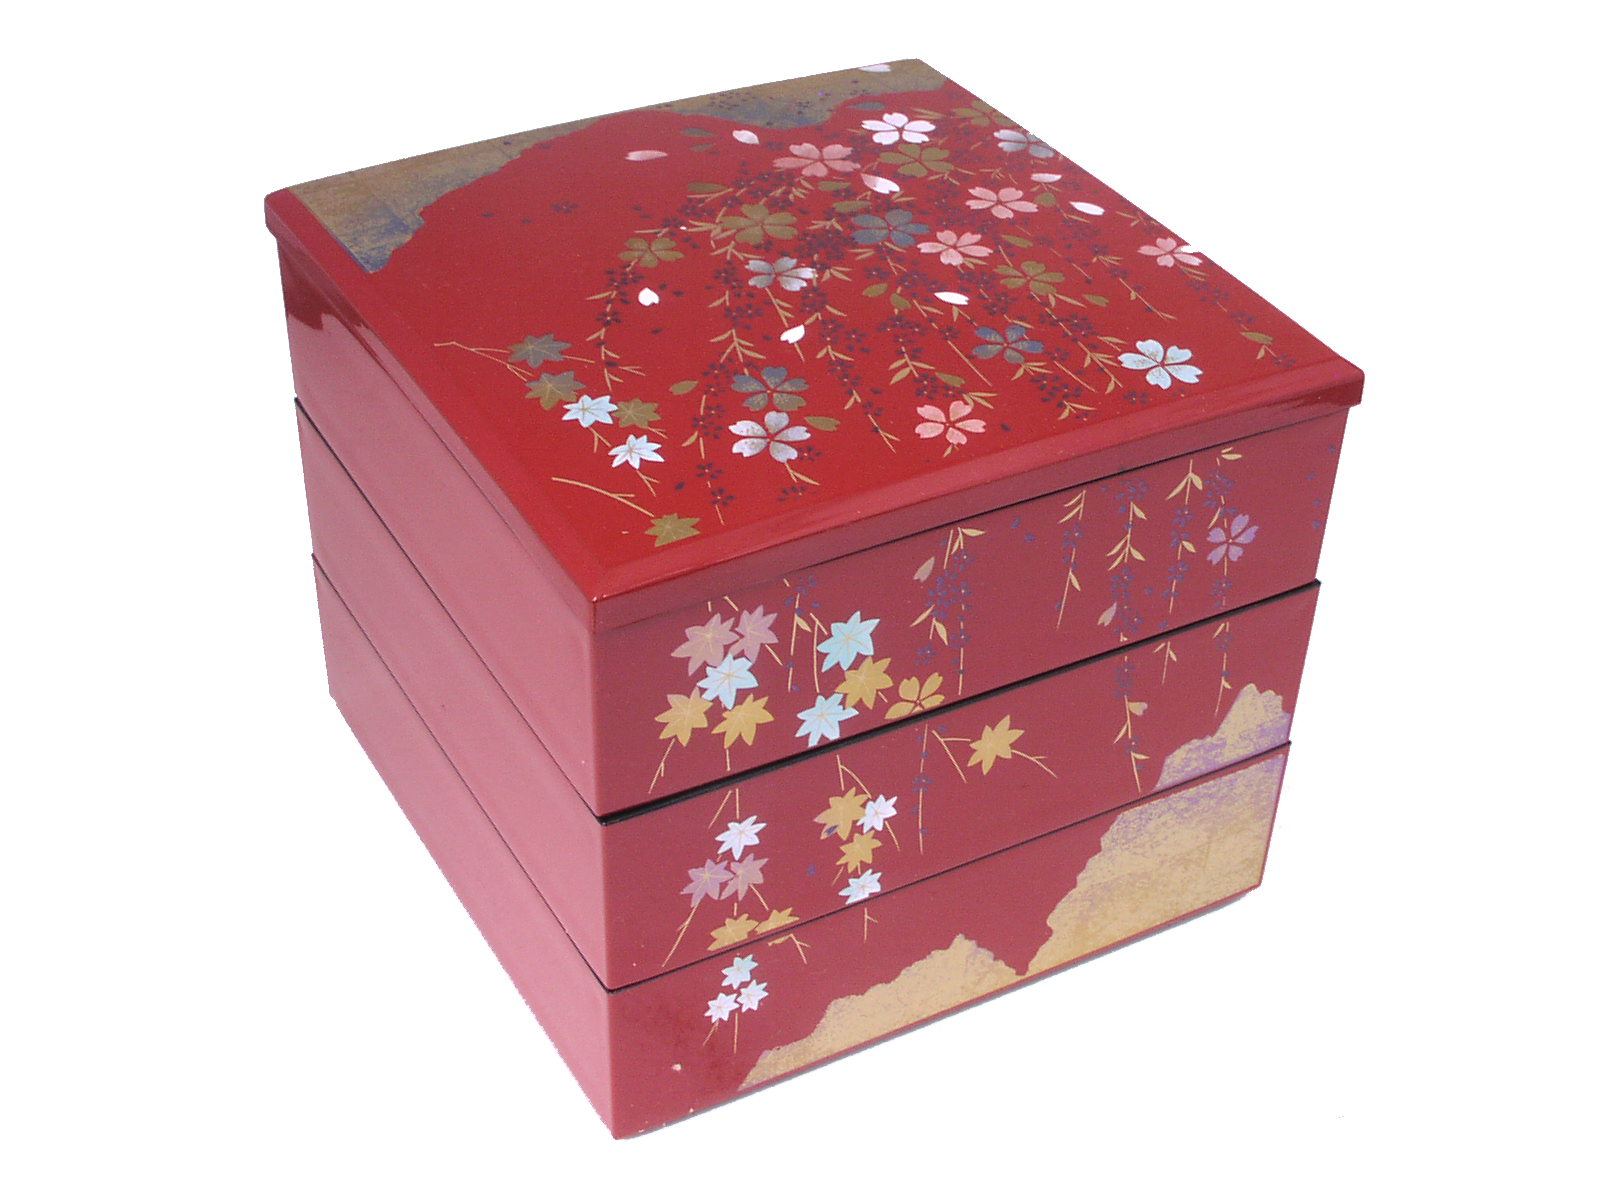 Asian Gifts: Japanese Gifts, Chinesese Gifts, Asian Giftware